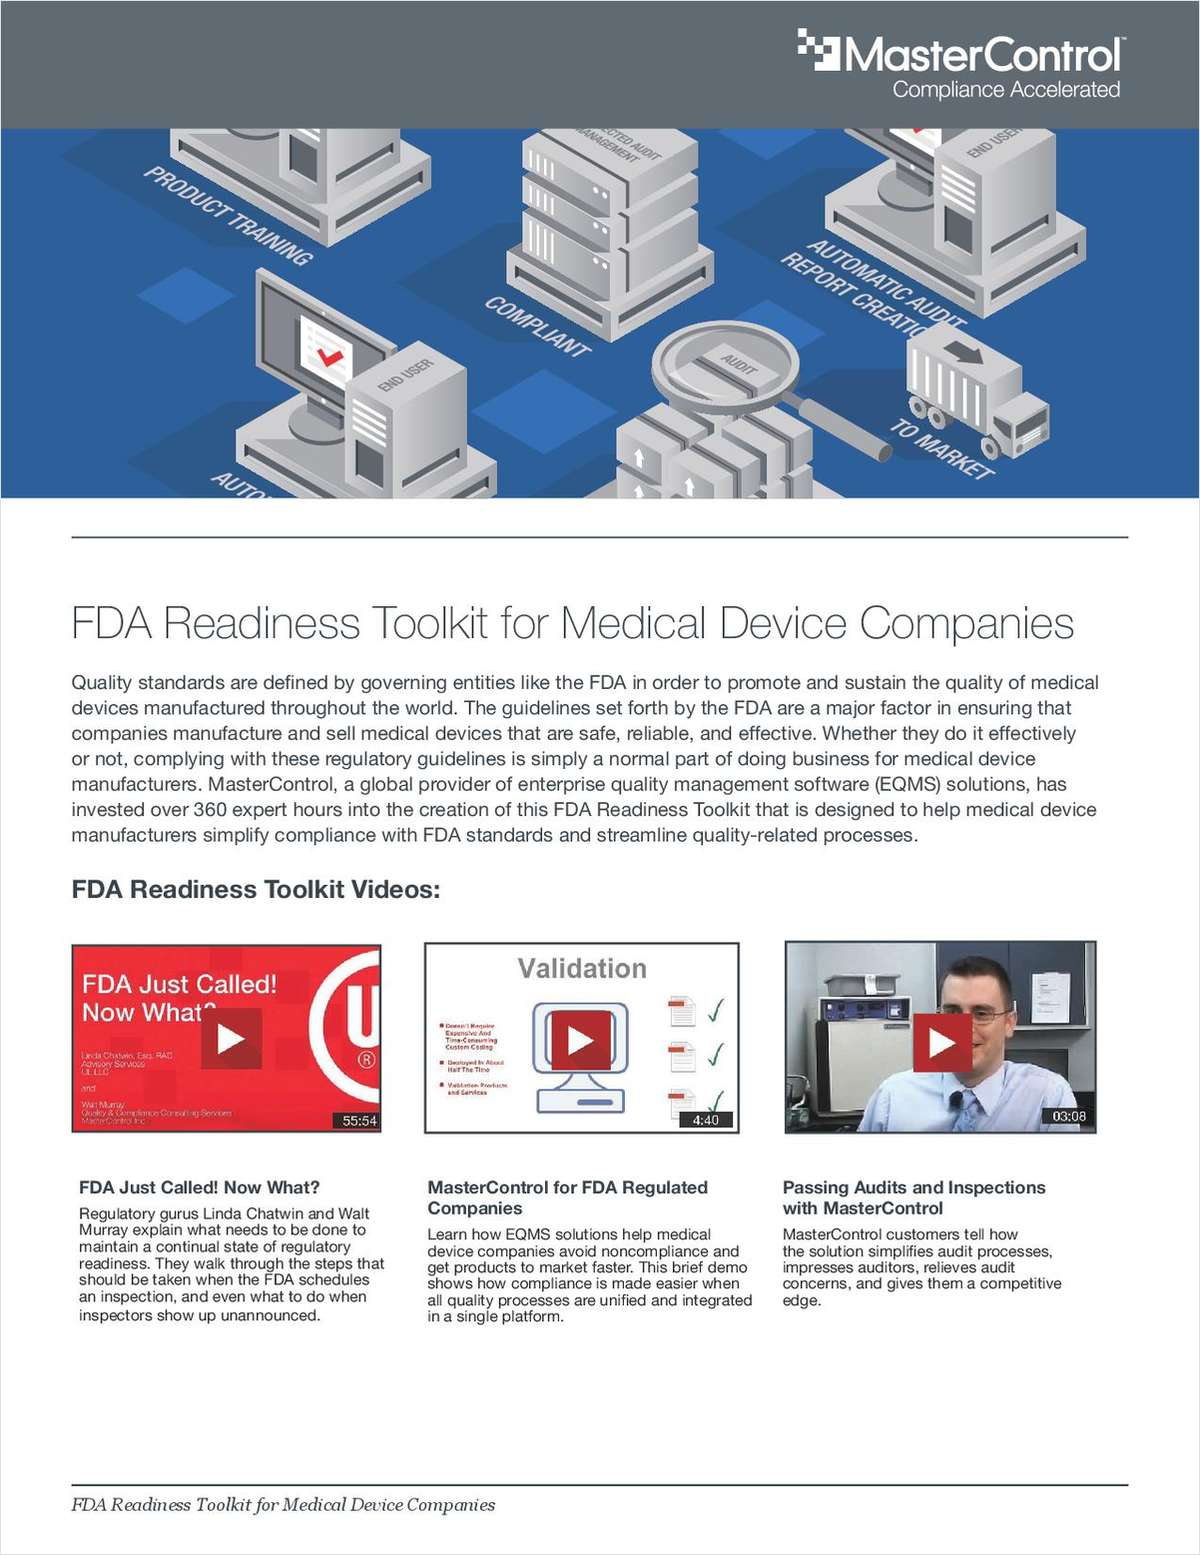 FDA Readiness Toolkit for Medical Device Companies